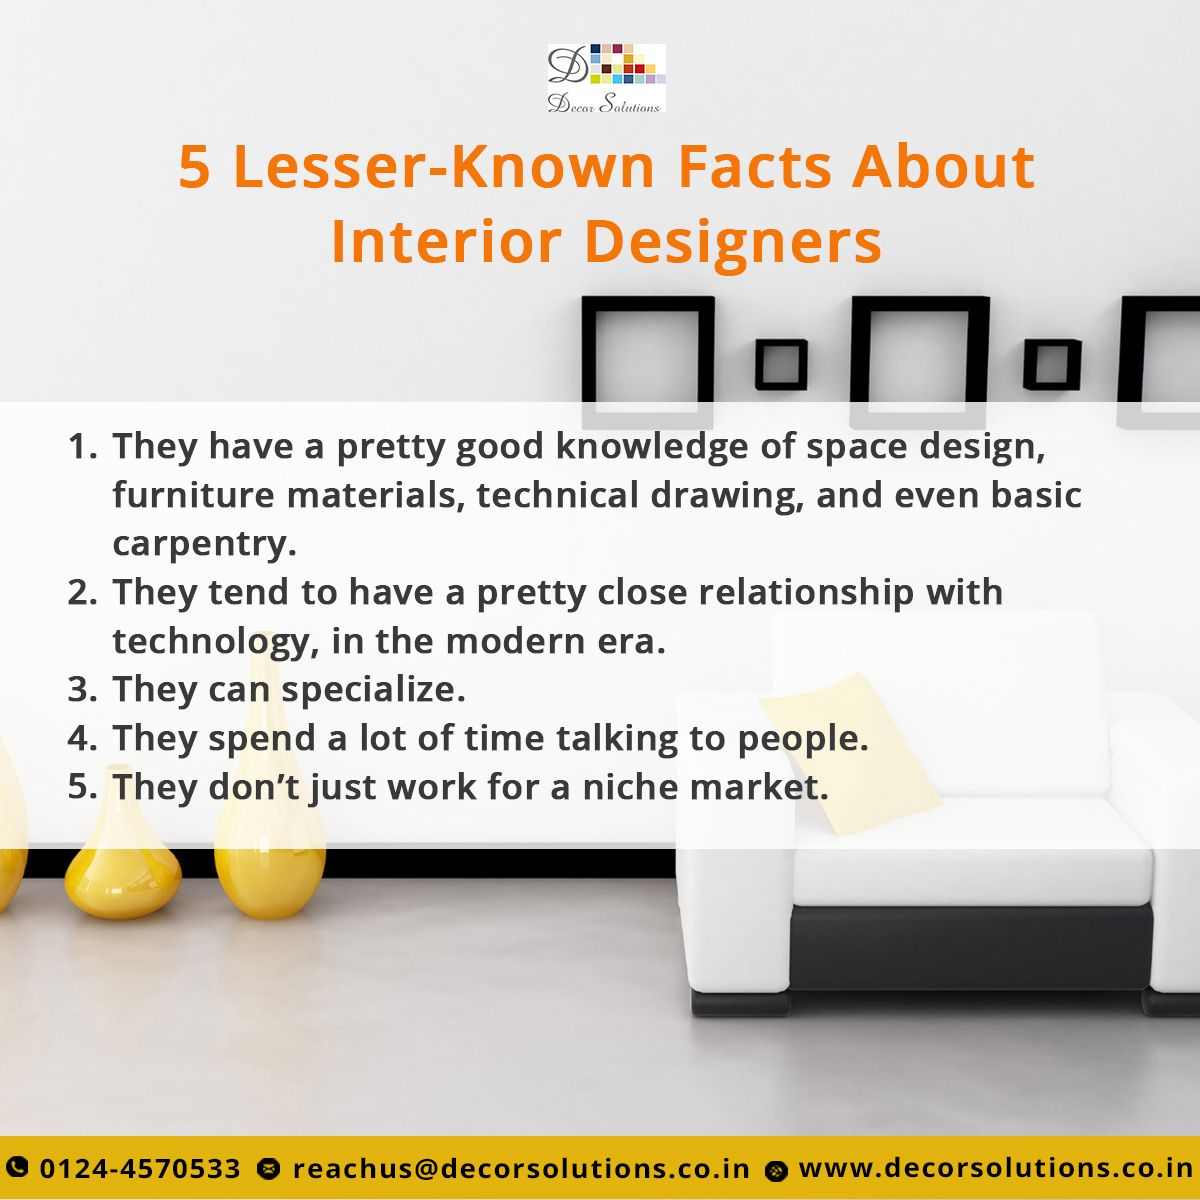 Amazing Facts In The World Of Interior Designers Decorsolutions Interiordesigner Fridayfact Hyweekend